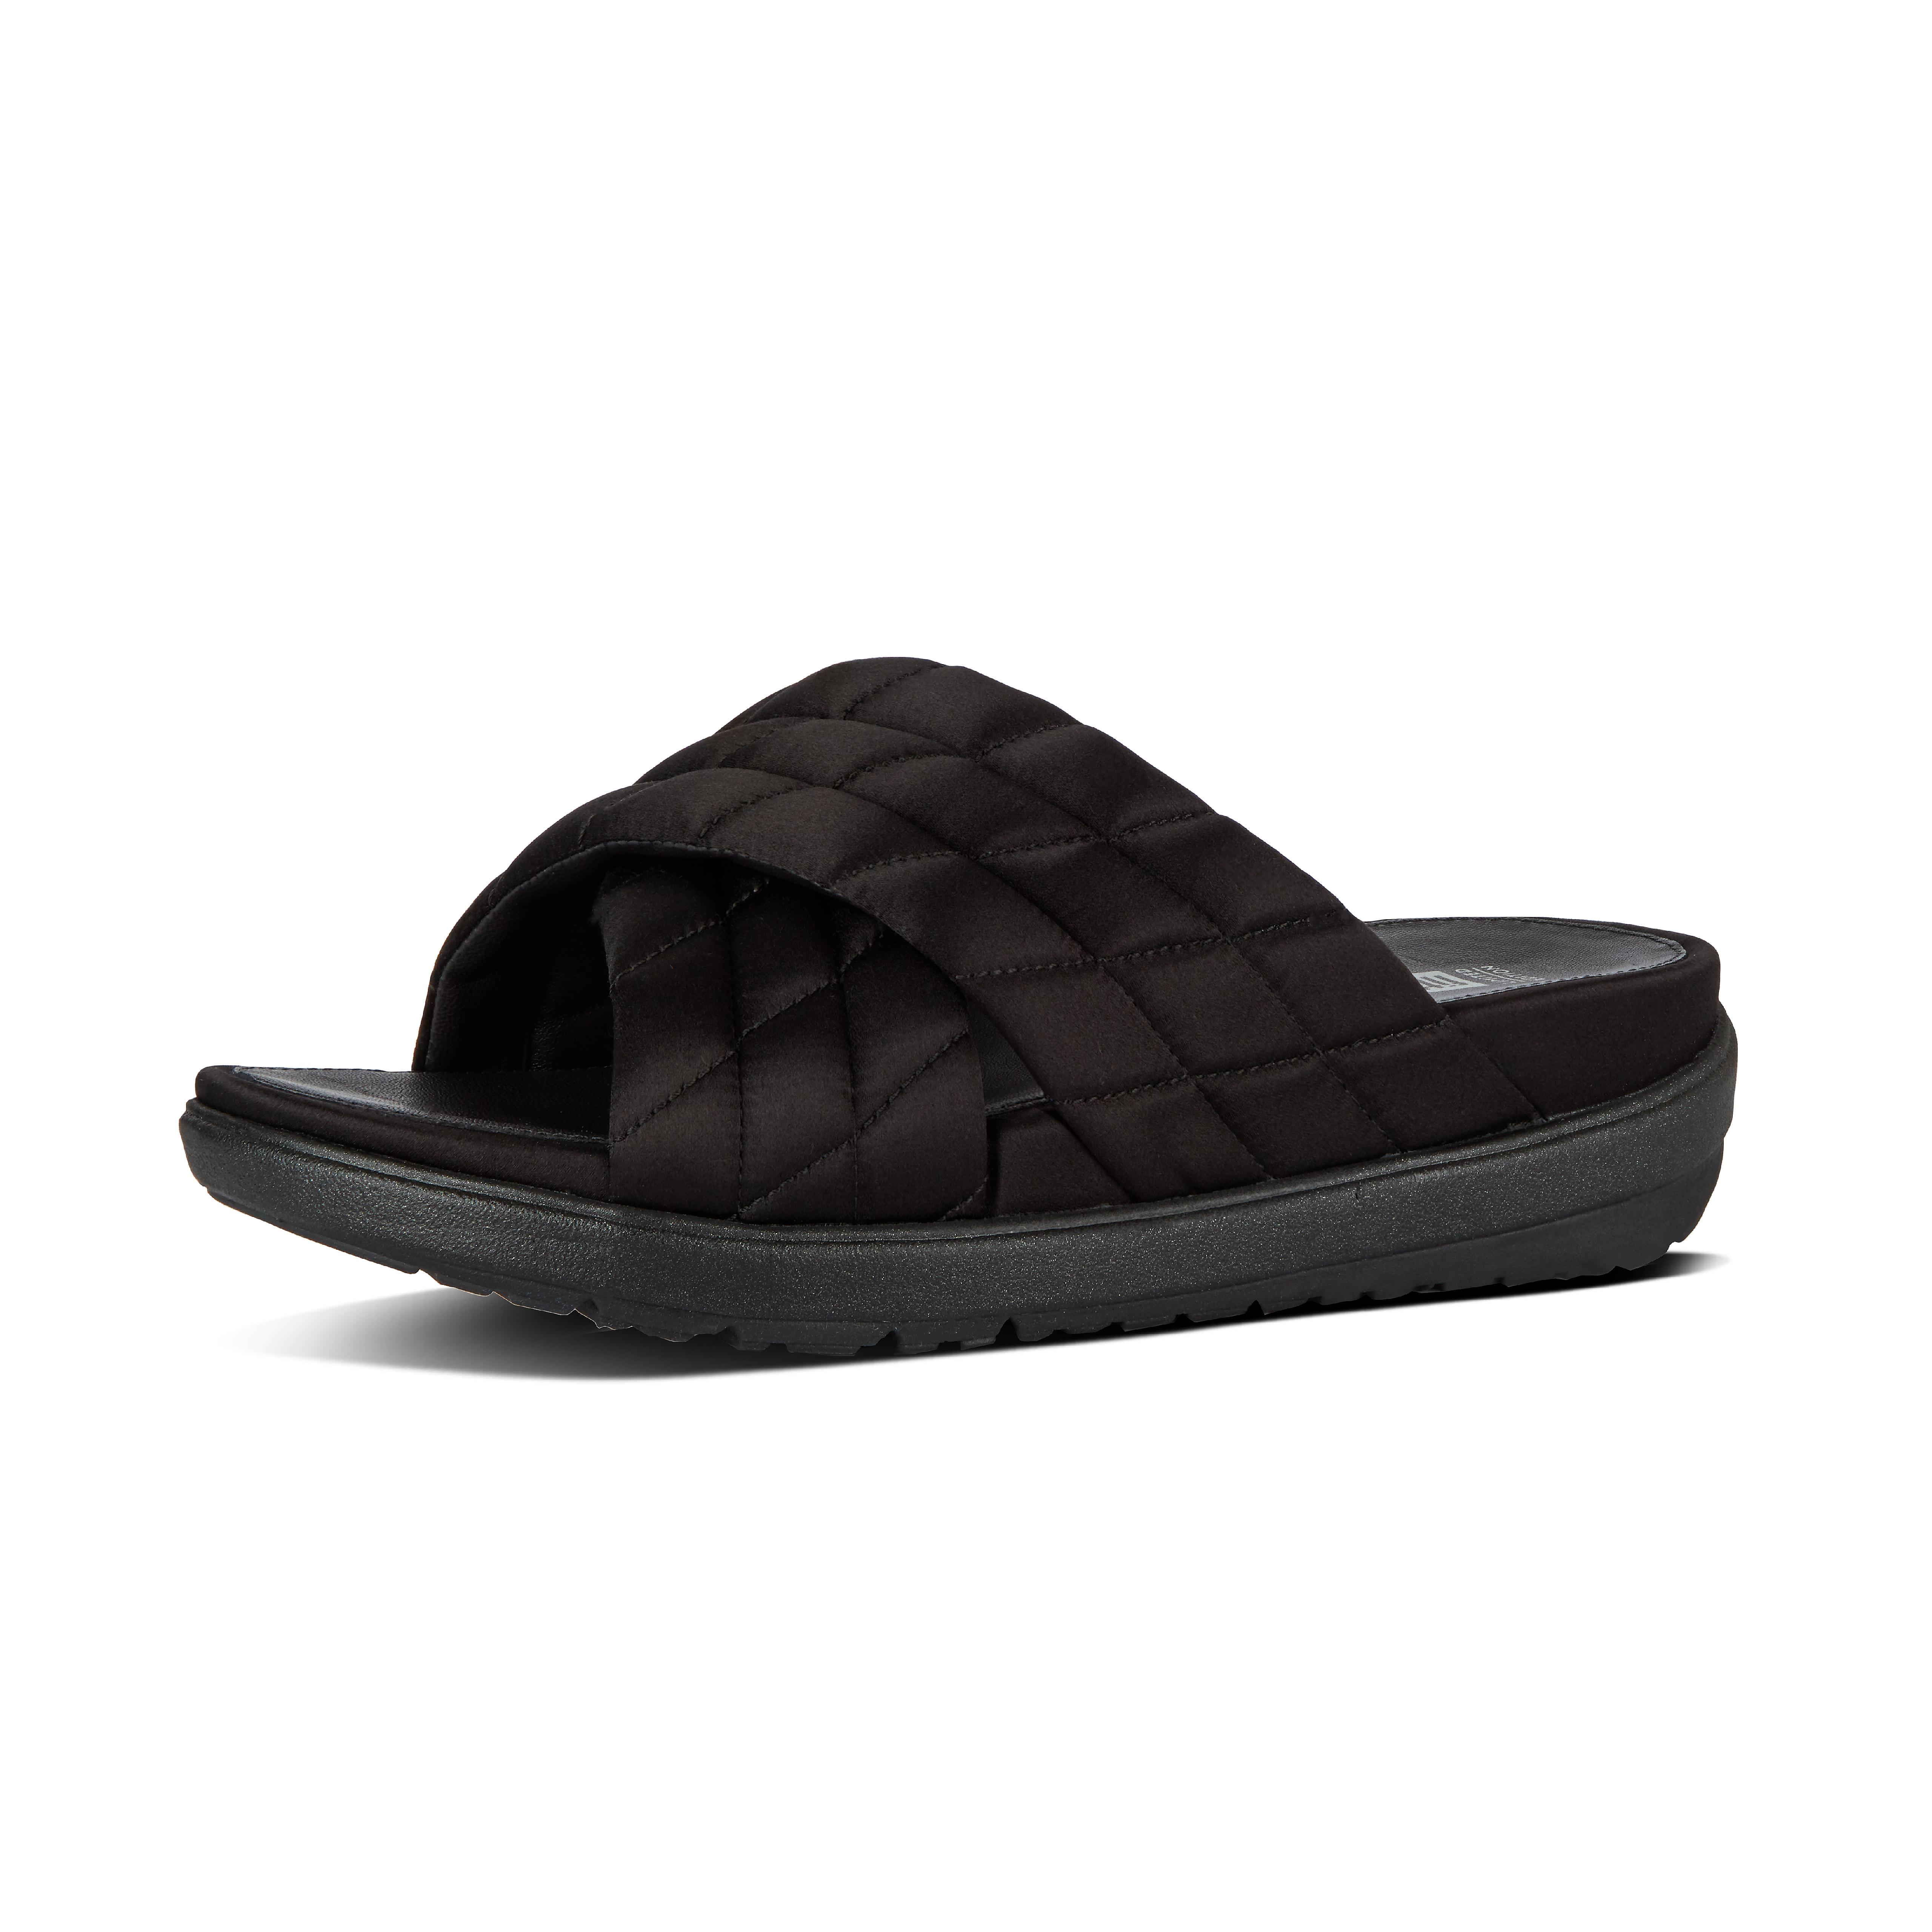 """Slides to Loosh your head over. Our fabulously fashionable cross slides step out in a super de luxe, limited-edition version. Think silky satin uppers, cushiony quilting that hugs your feet (and earns serious style points), full-leather linings and a generous helping of sports-casual cool. All on our out-of-this-world-comfortable Microwobbleboard midsoles. Repeat after us: """"My feet are worth it."""""""